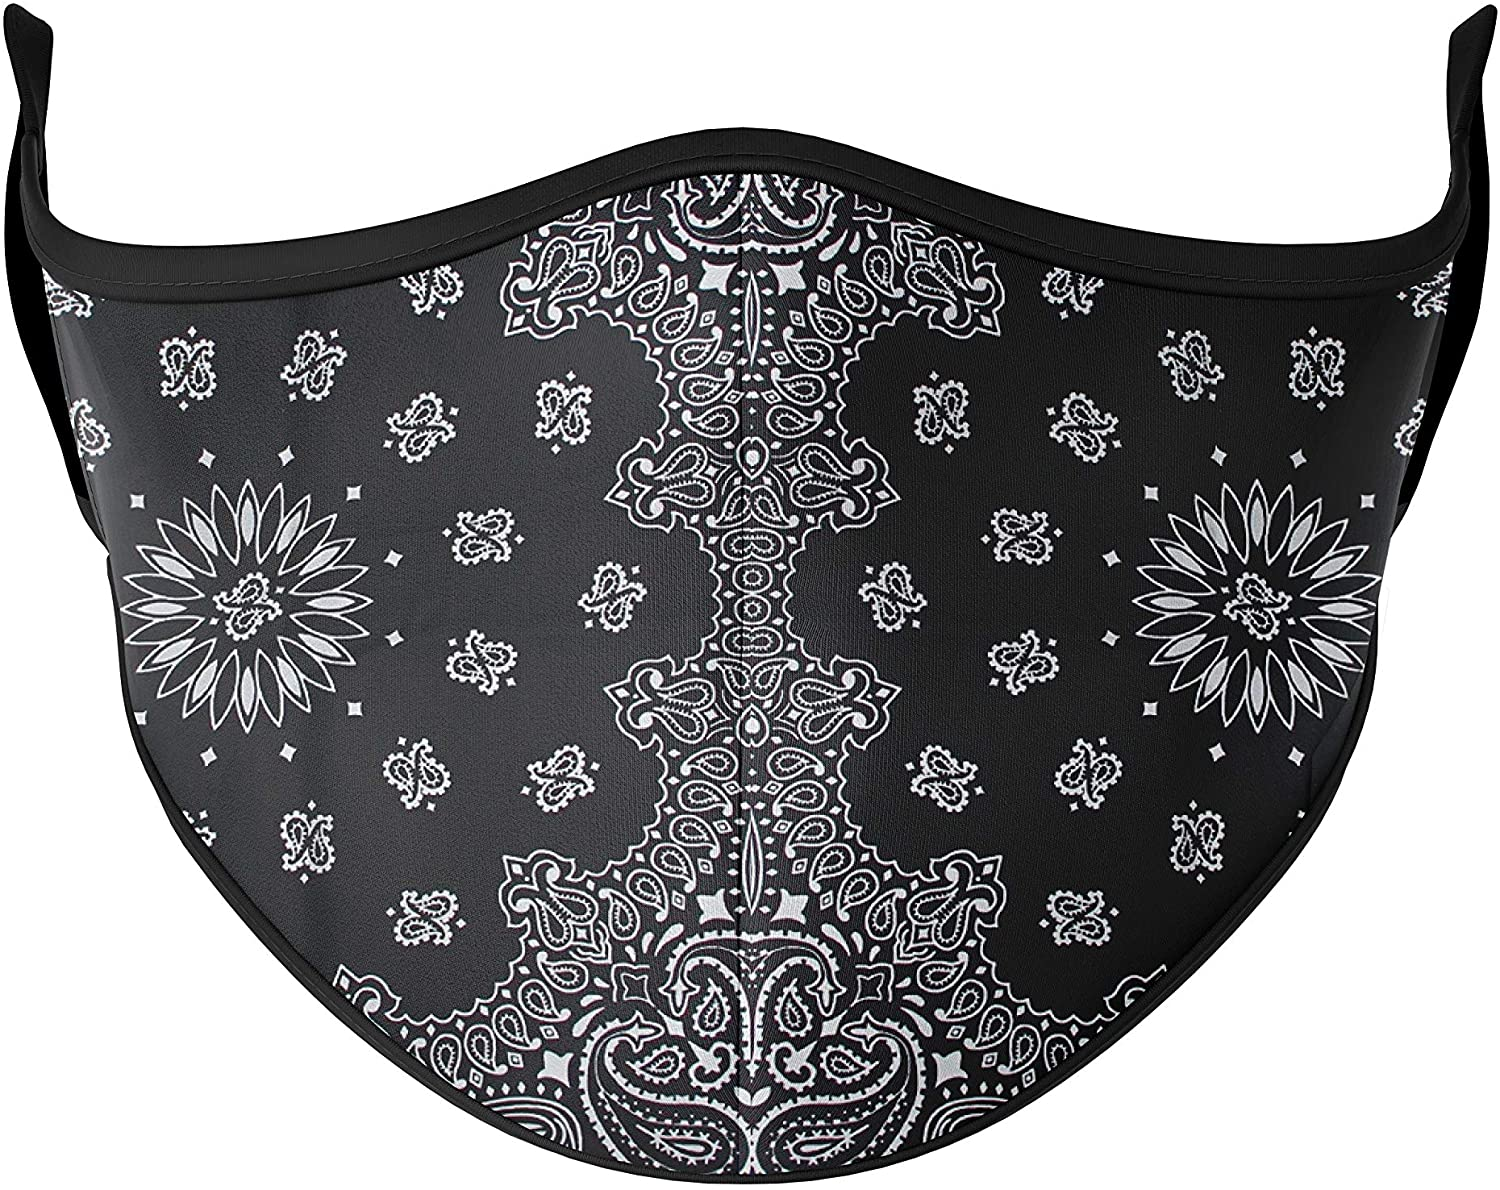 Top Trenz Reusable Face Mask Made with Stretch Cloth for Everyday Use - Indoor/Outdoor Face Cover - Bandana - One Size Fits Most Ages 10+